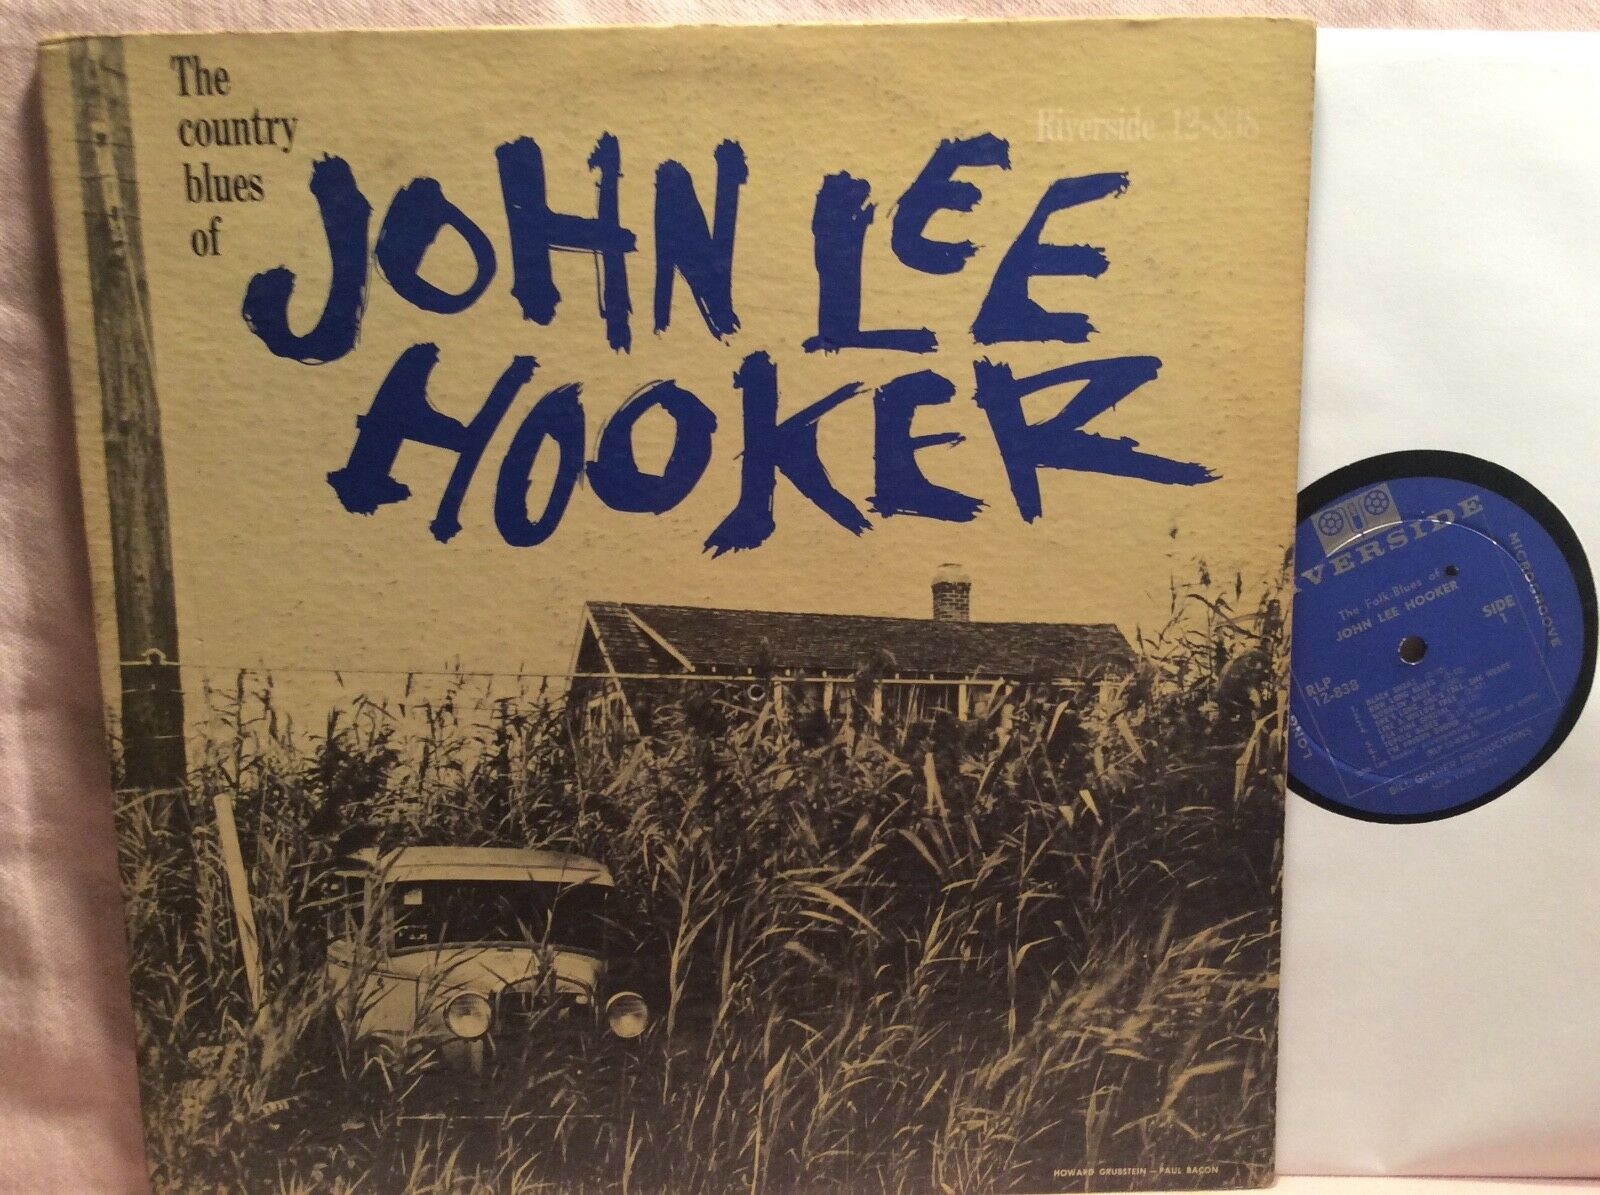 JOHN LEE HOOKER LP The Country Blues RIVERSIDE og BLUE Reel Mic Label Nice Copy